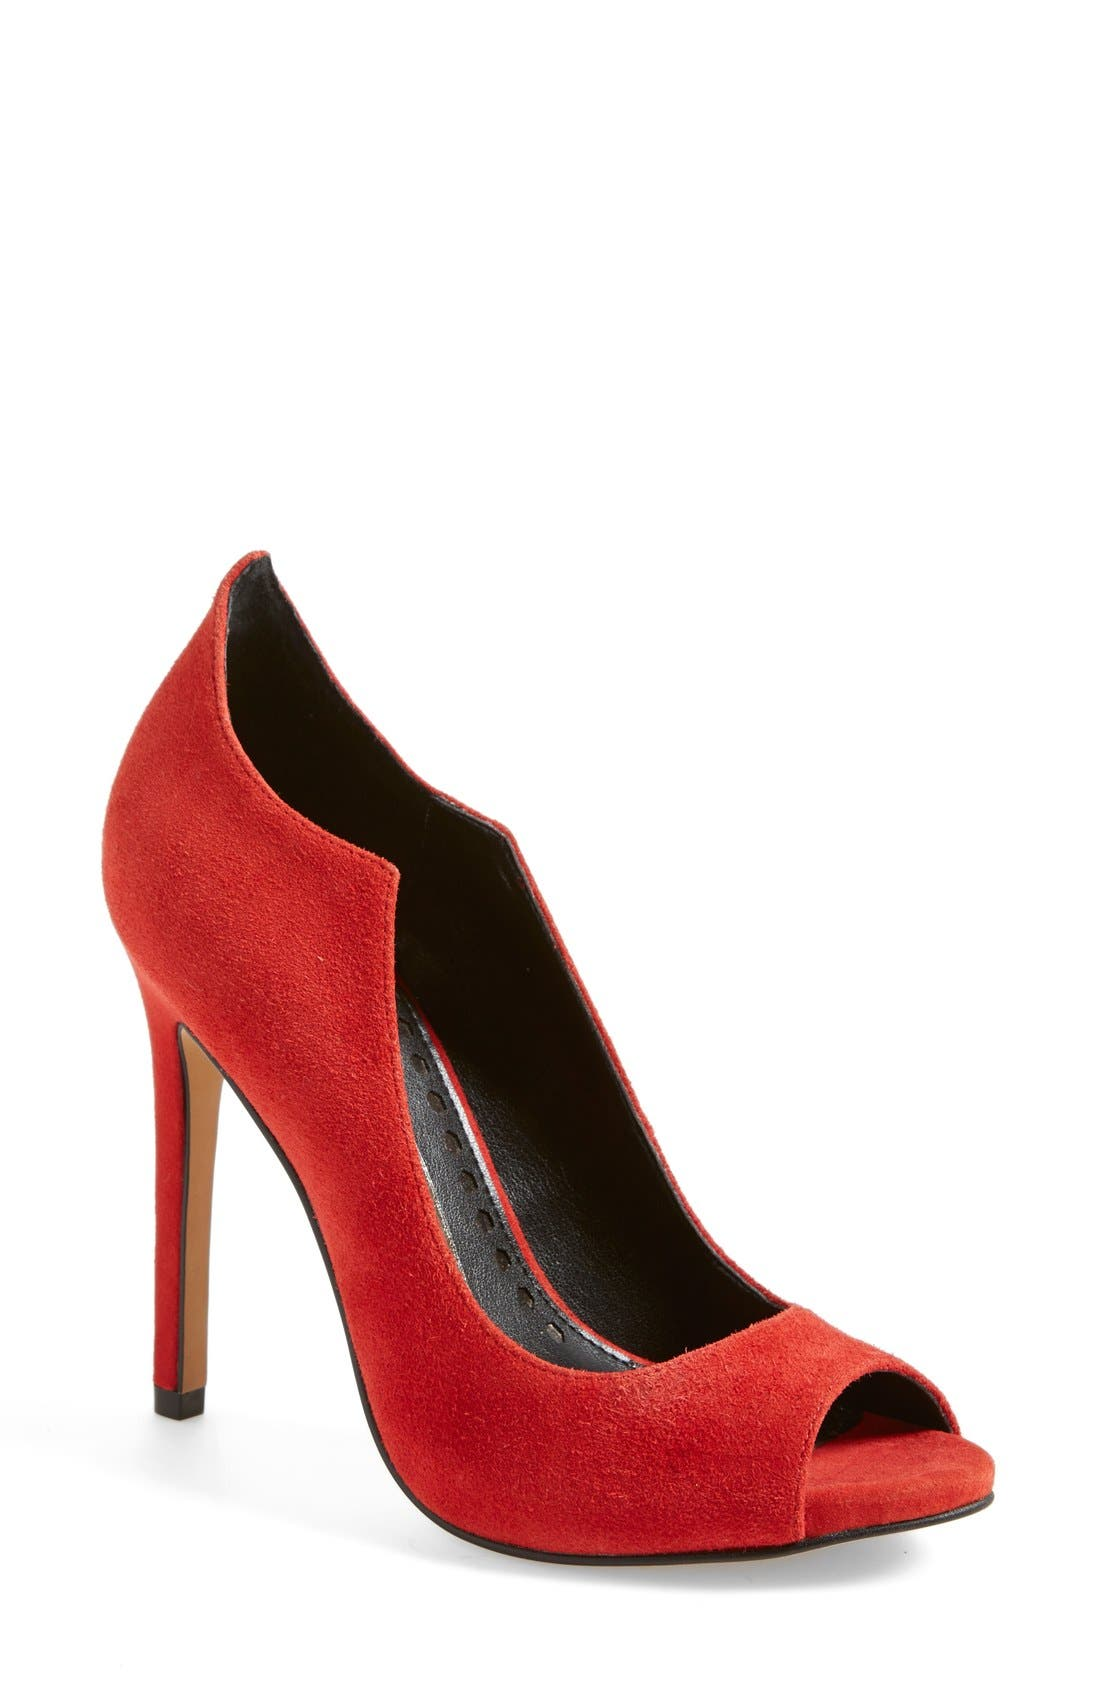 Alternate Image 1 Selected - Dolce Vita 'Isabel' Peep Toe Pump (Women)